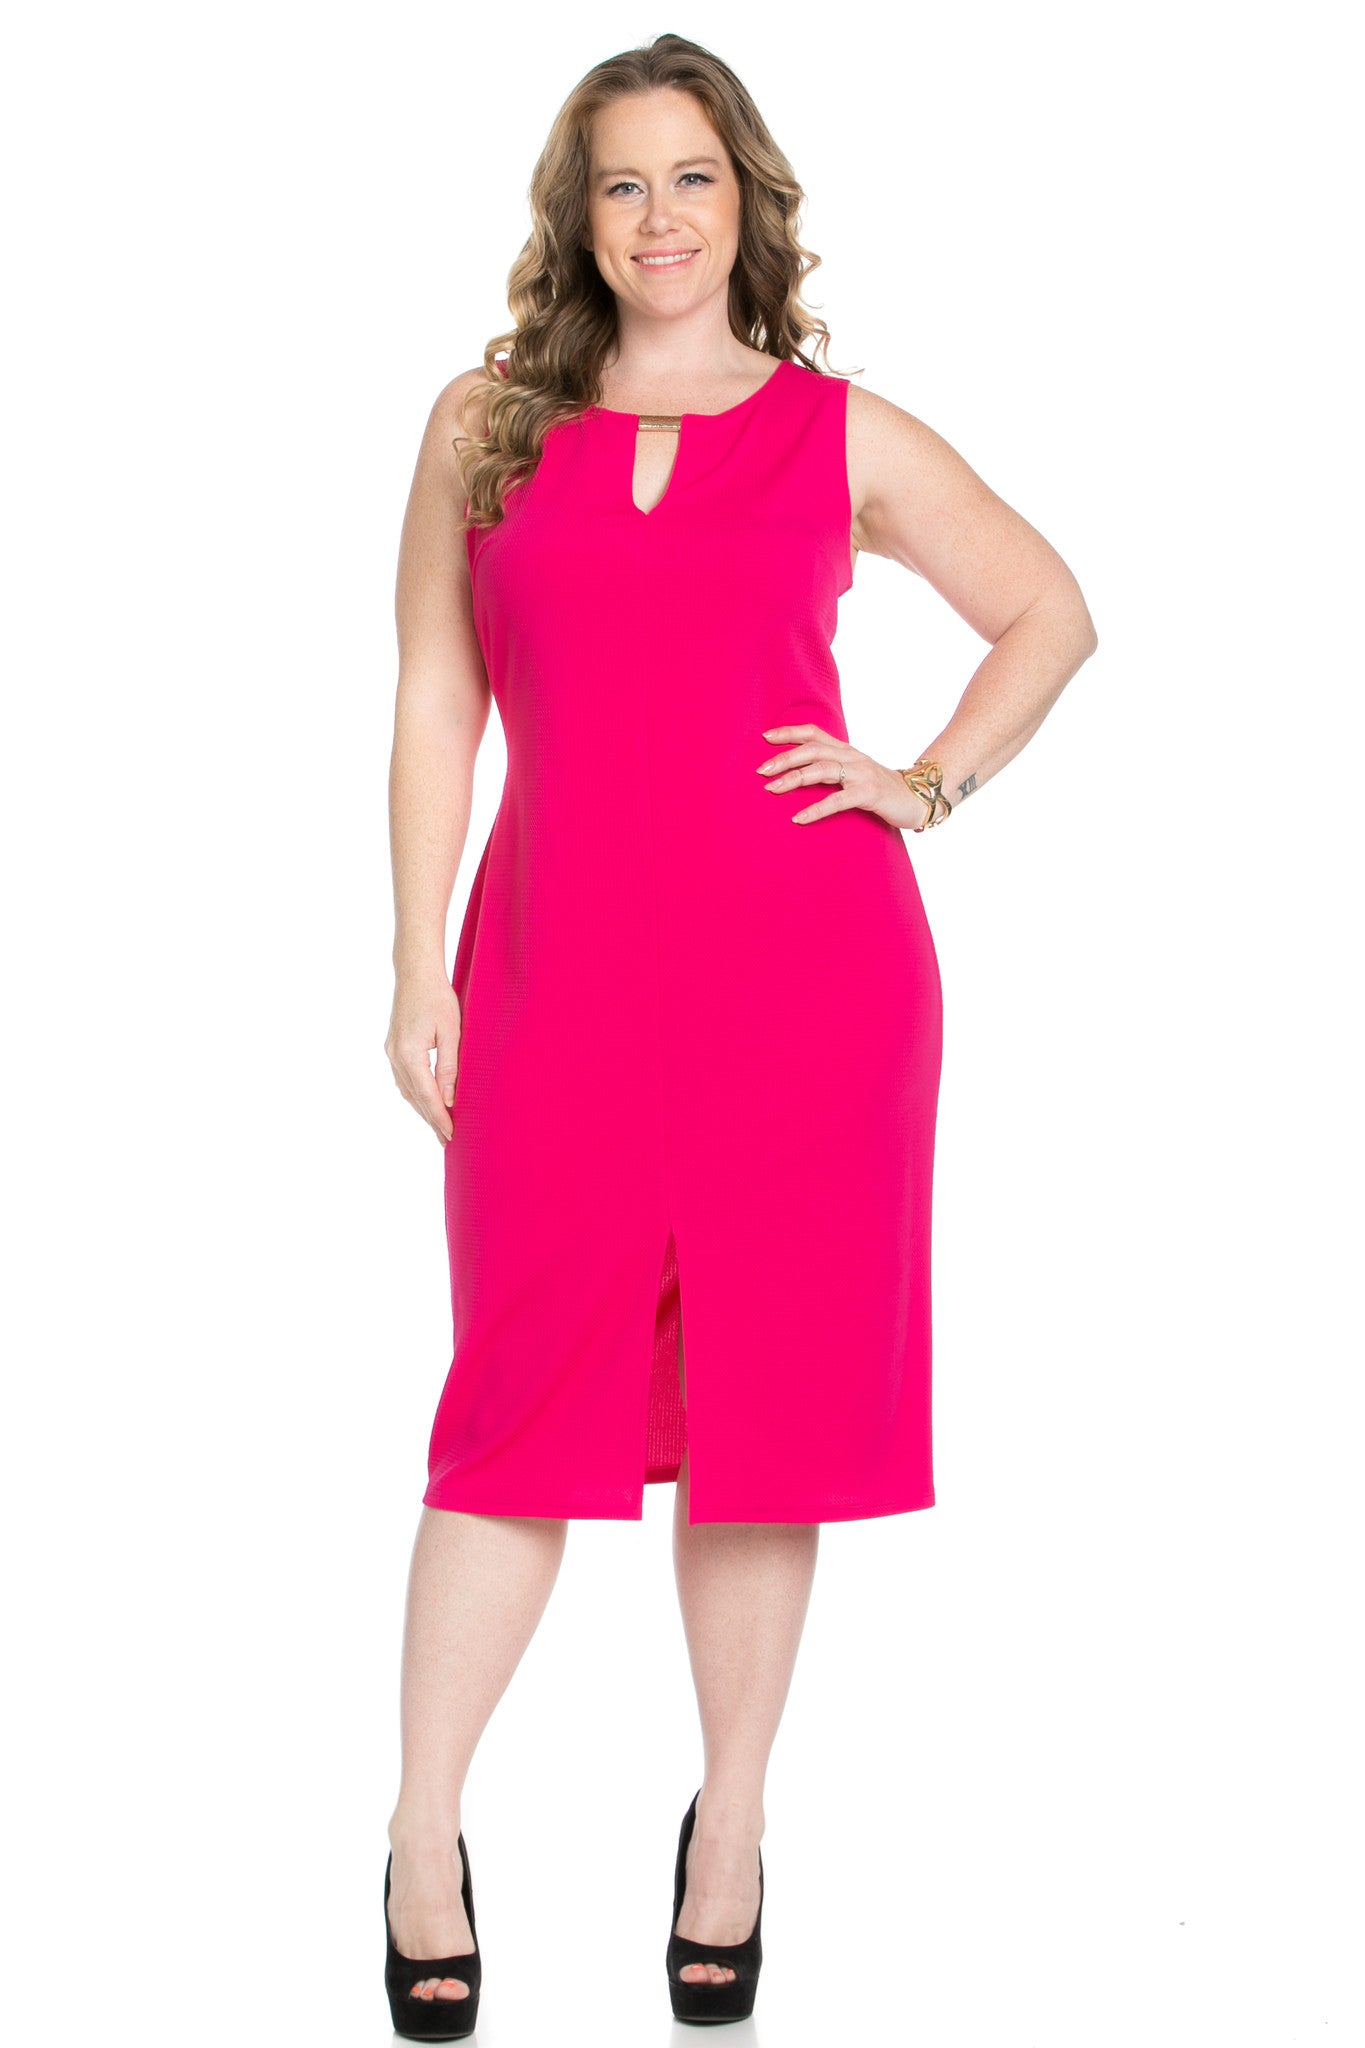 Fuschia Modest a Bit with Bare Shoulders Dress - Dresses - My Yuccie - 2